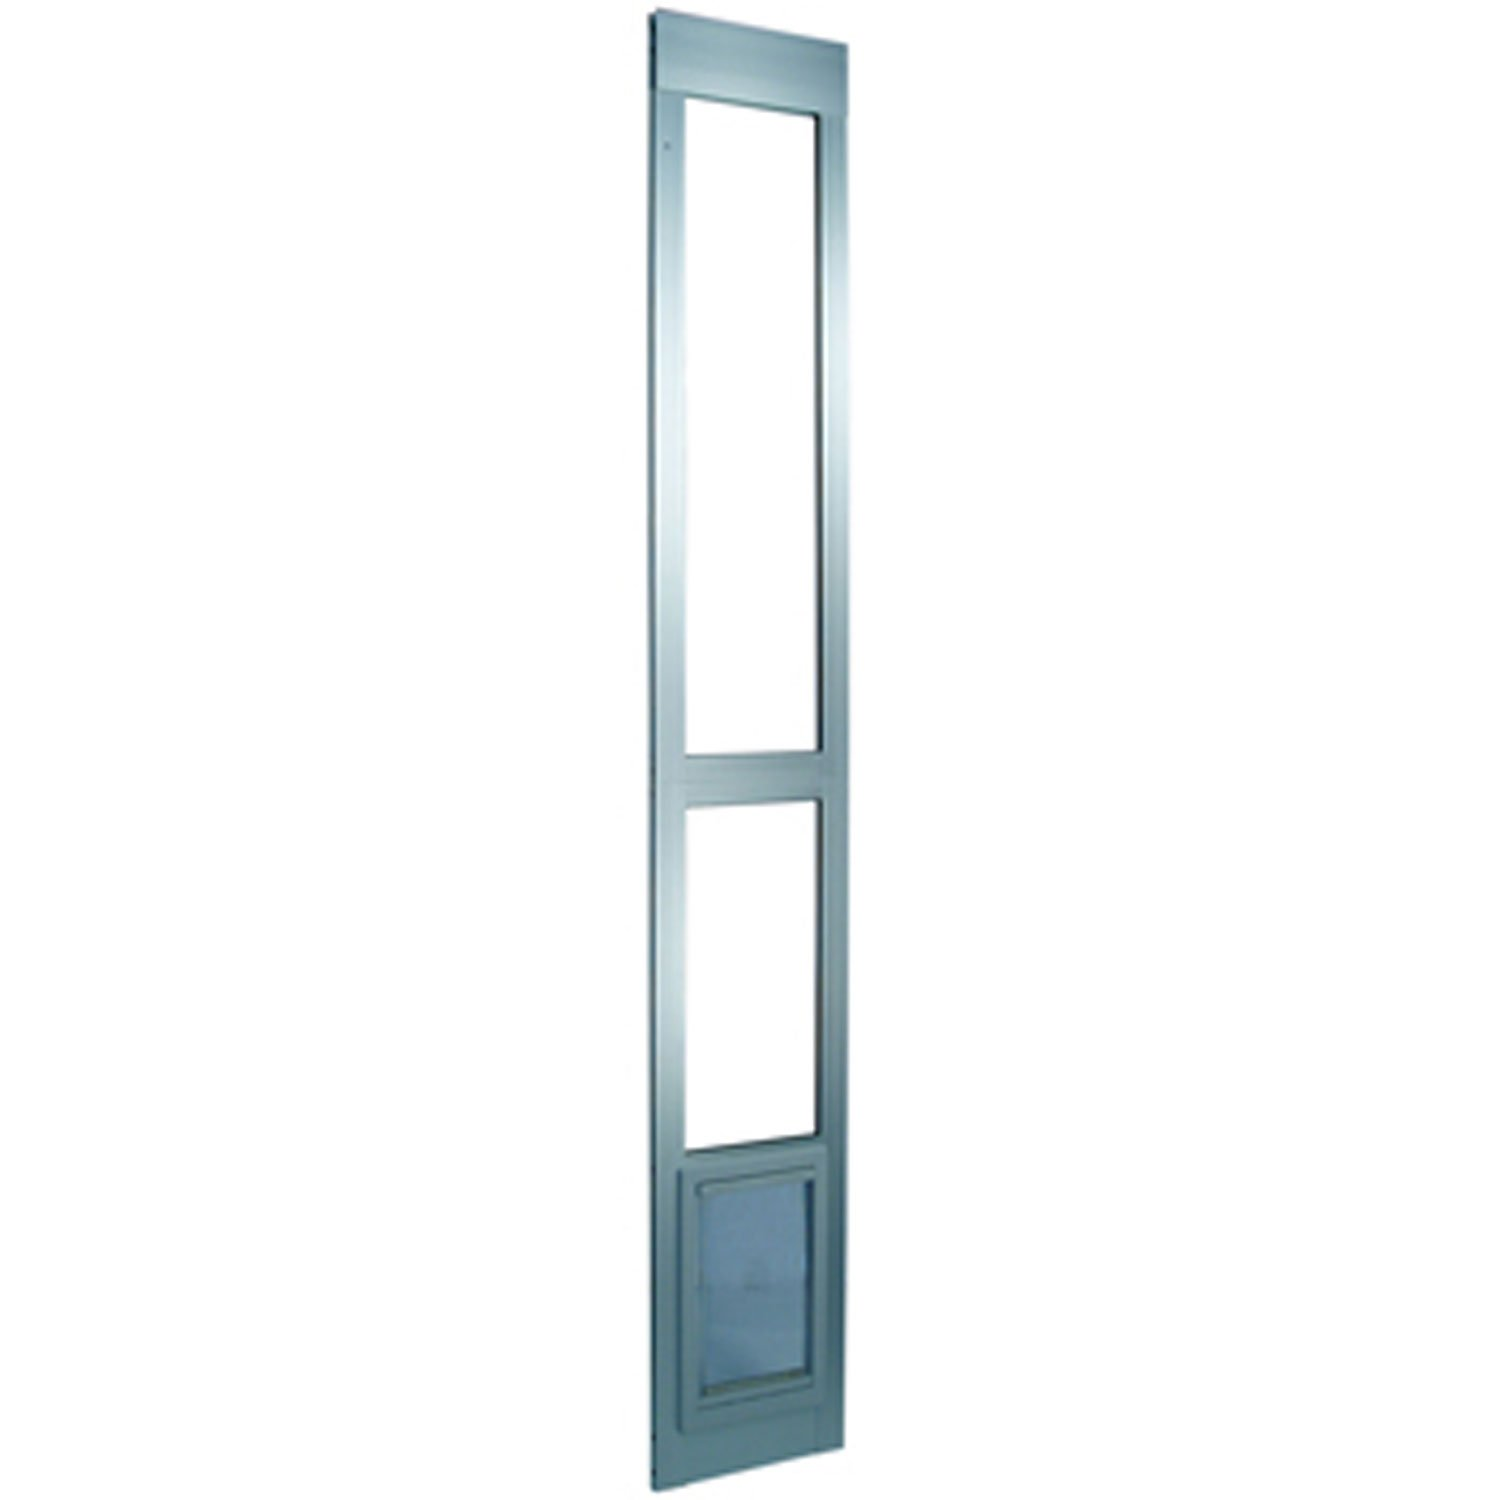 Perfect Pet Modular Patio Panel Pet Door in Mill 15.375IN x 1.875IN x 40.75IN XLarge Silver